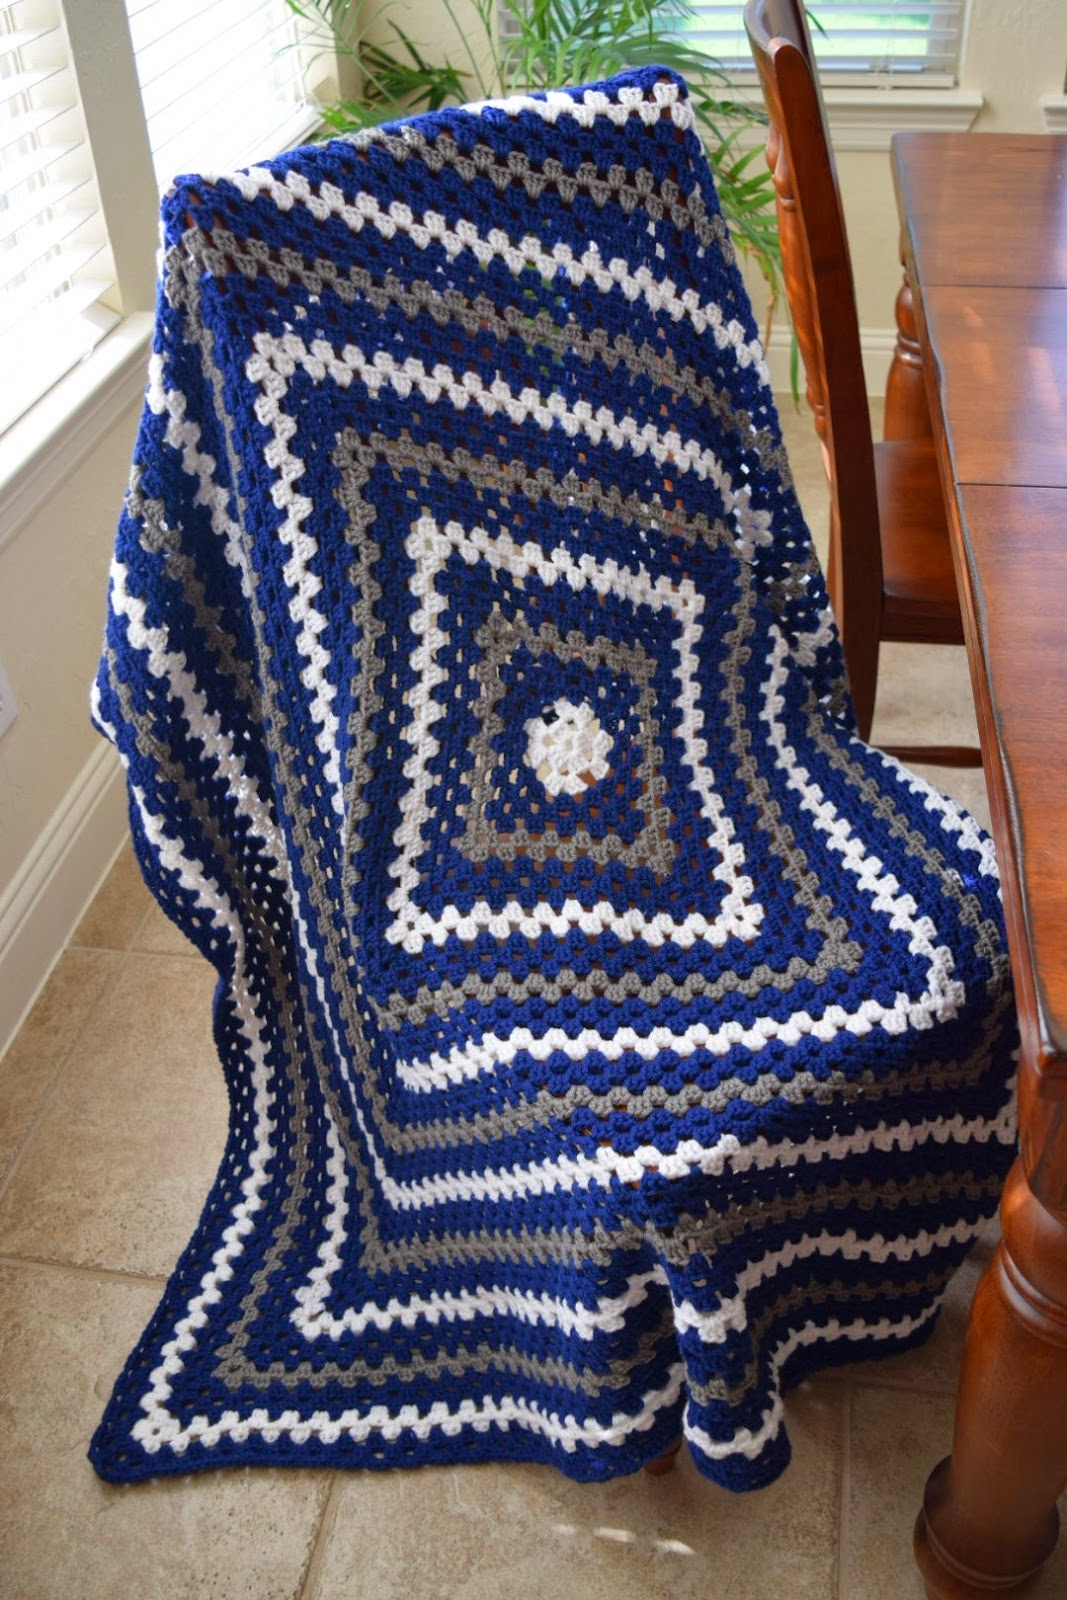 All Things Chateau de Savoy: Crochet Granny Square Lap ...